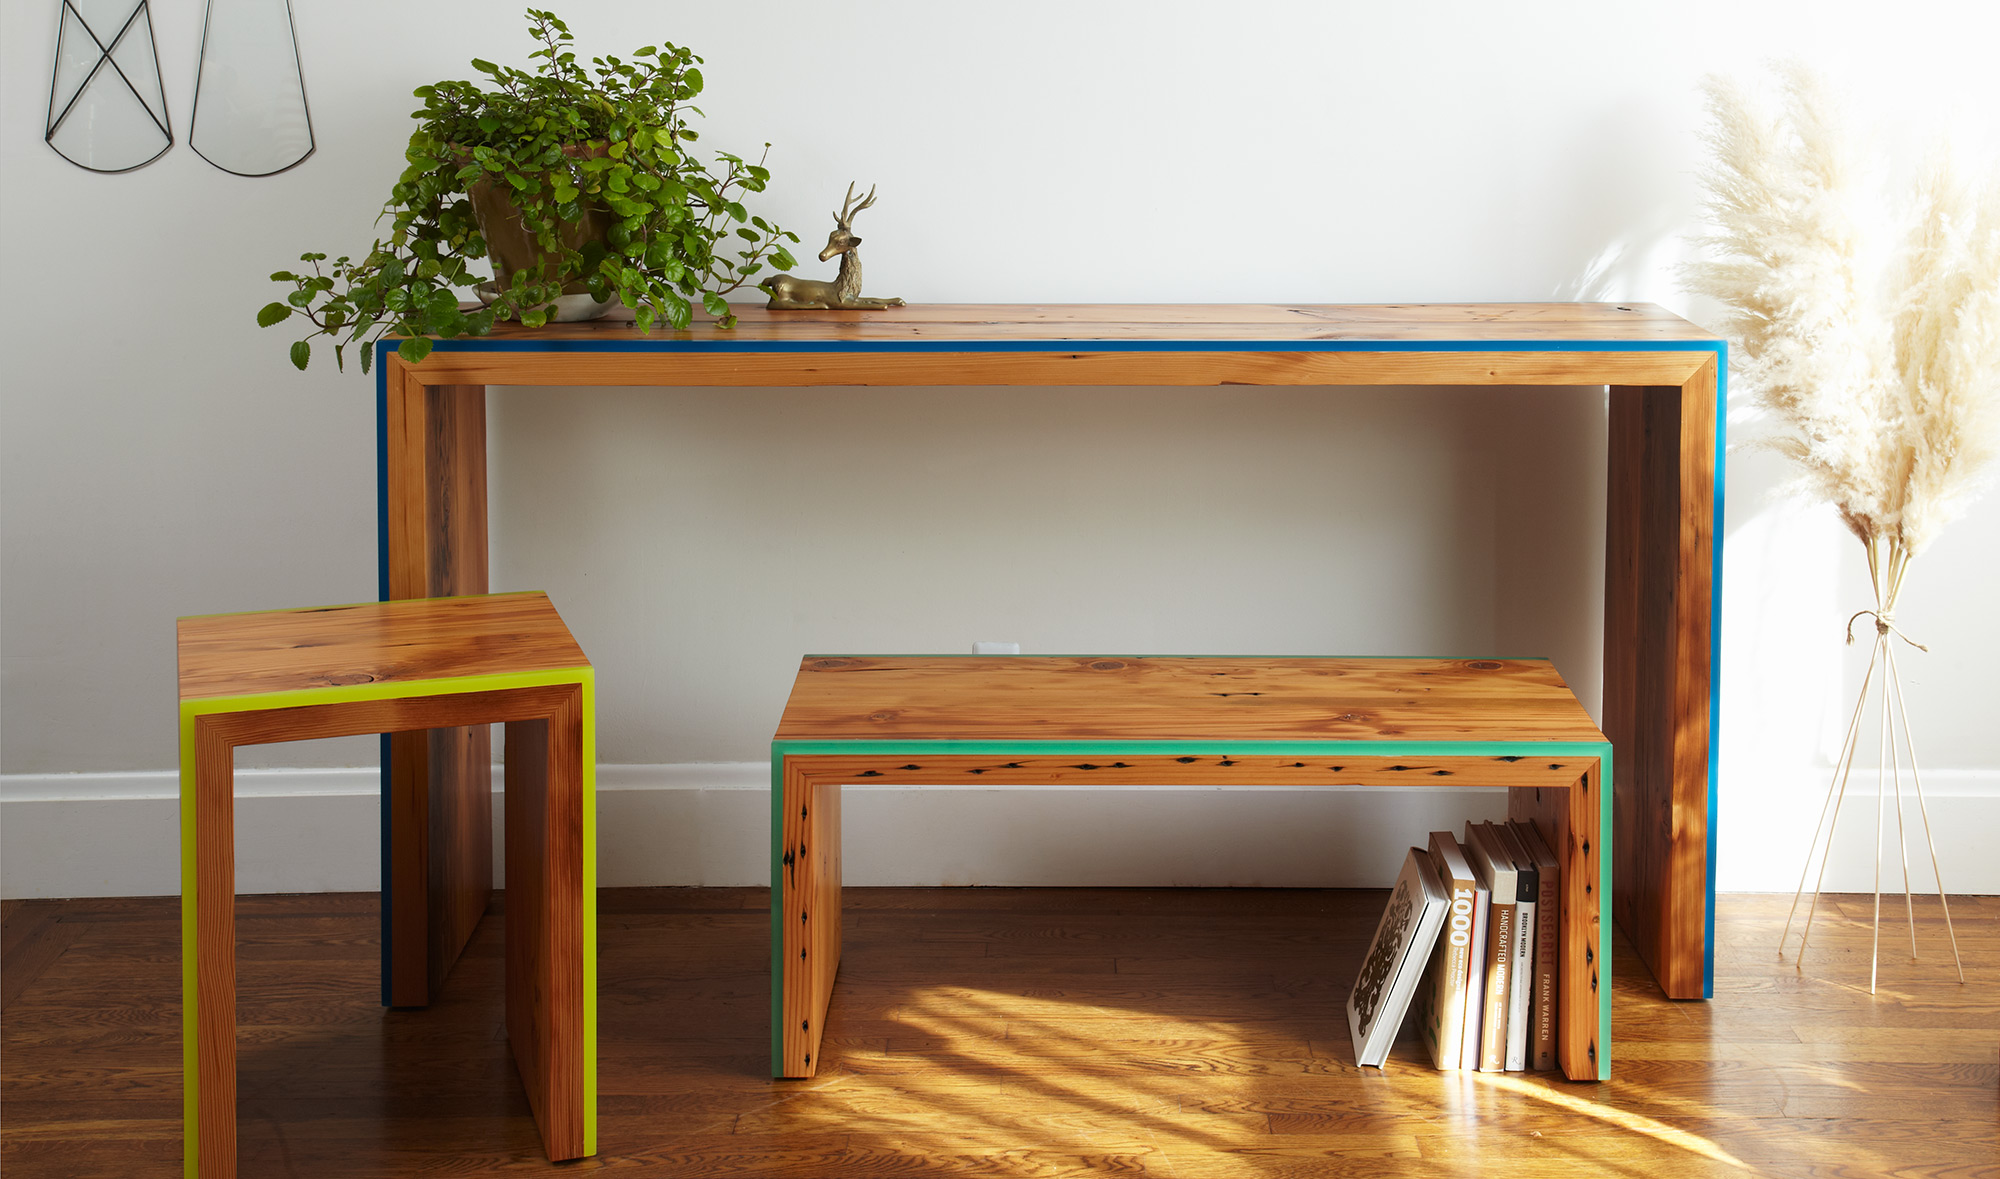 Monster_Island_Console_Table_Noble_Goods_Molly_FitzSimons.jpg